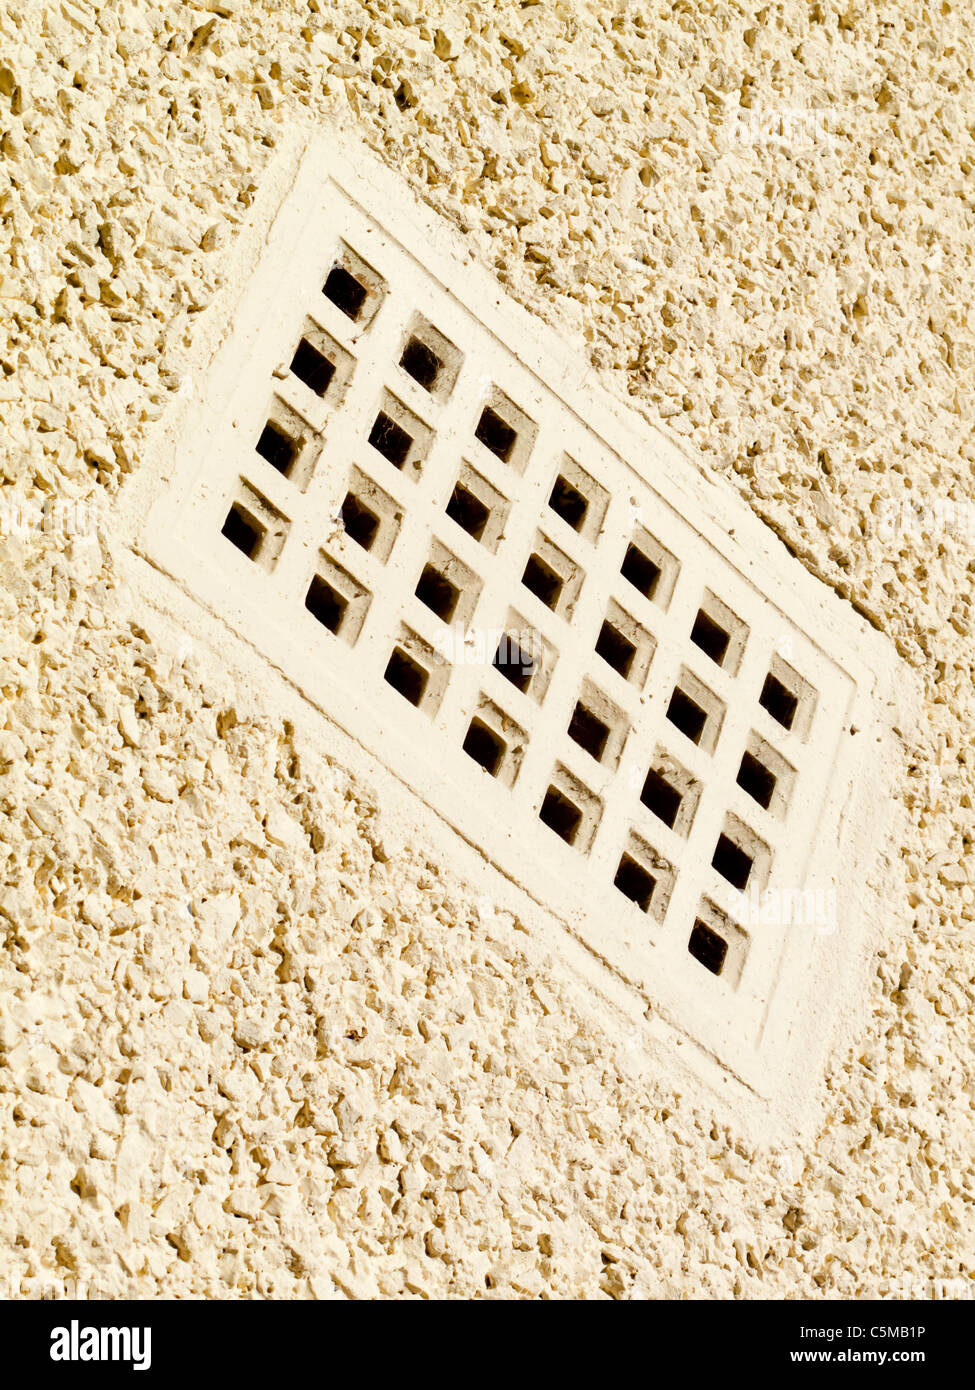 Air brick used for ventilation on the outside of a house with white painted rendering - Stock Image